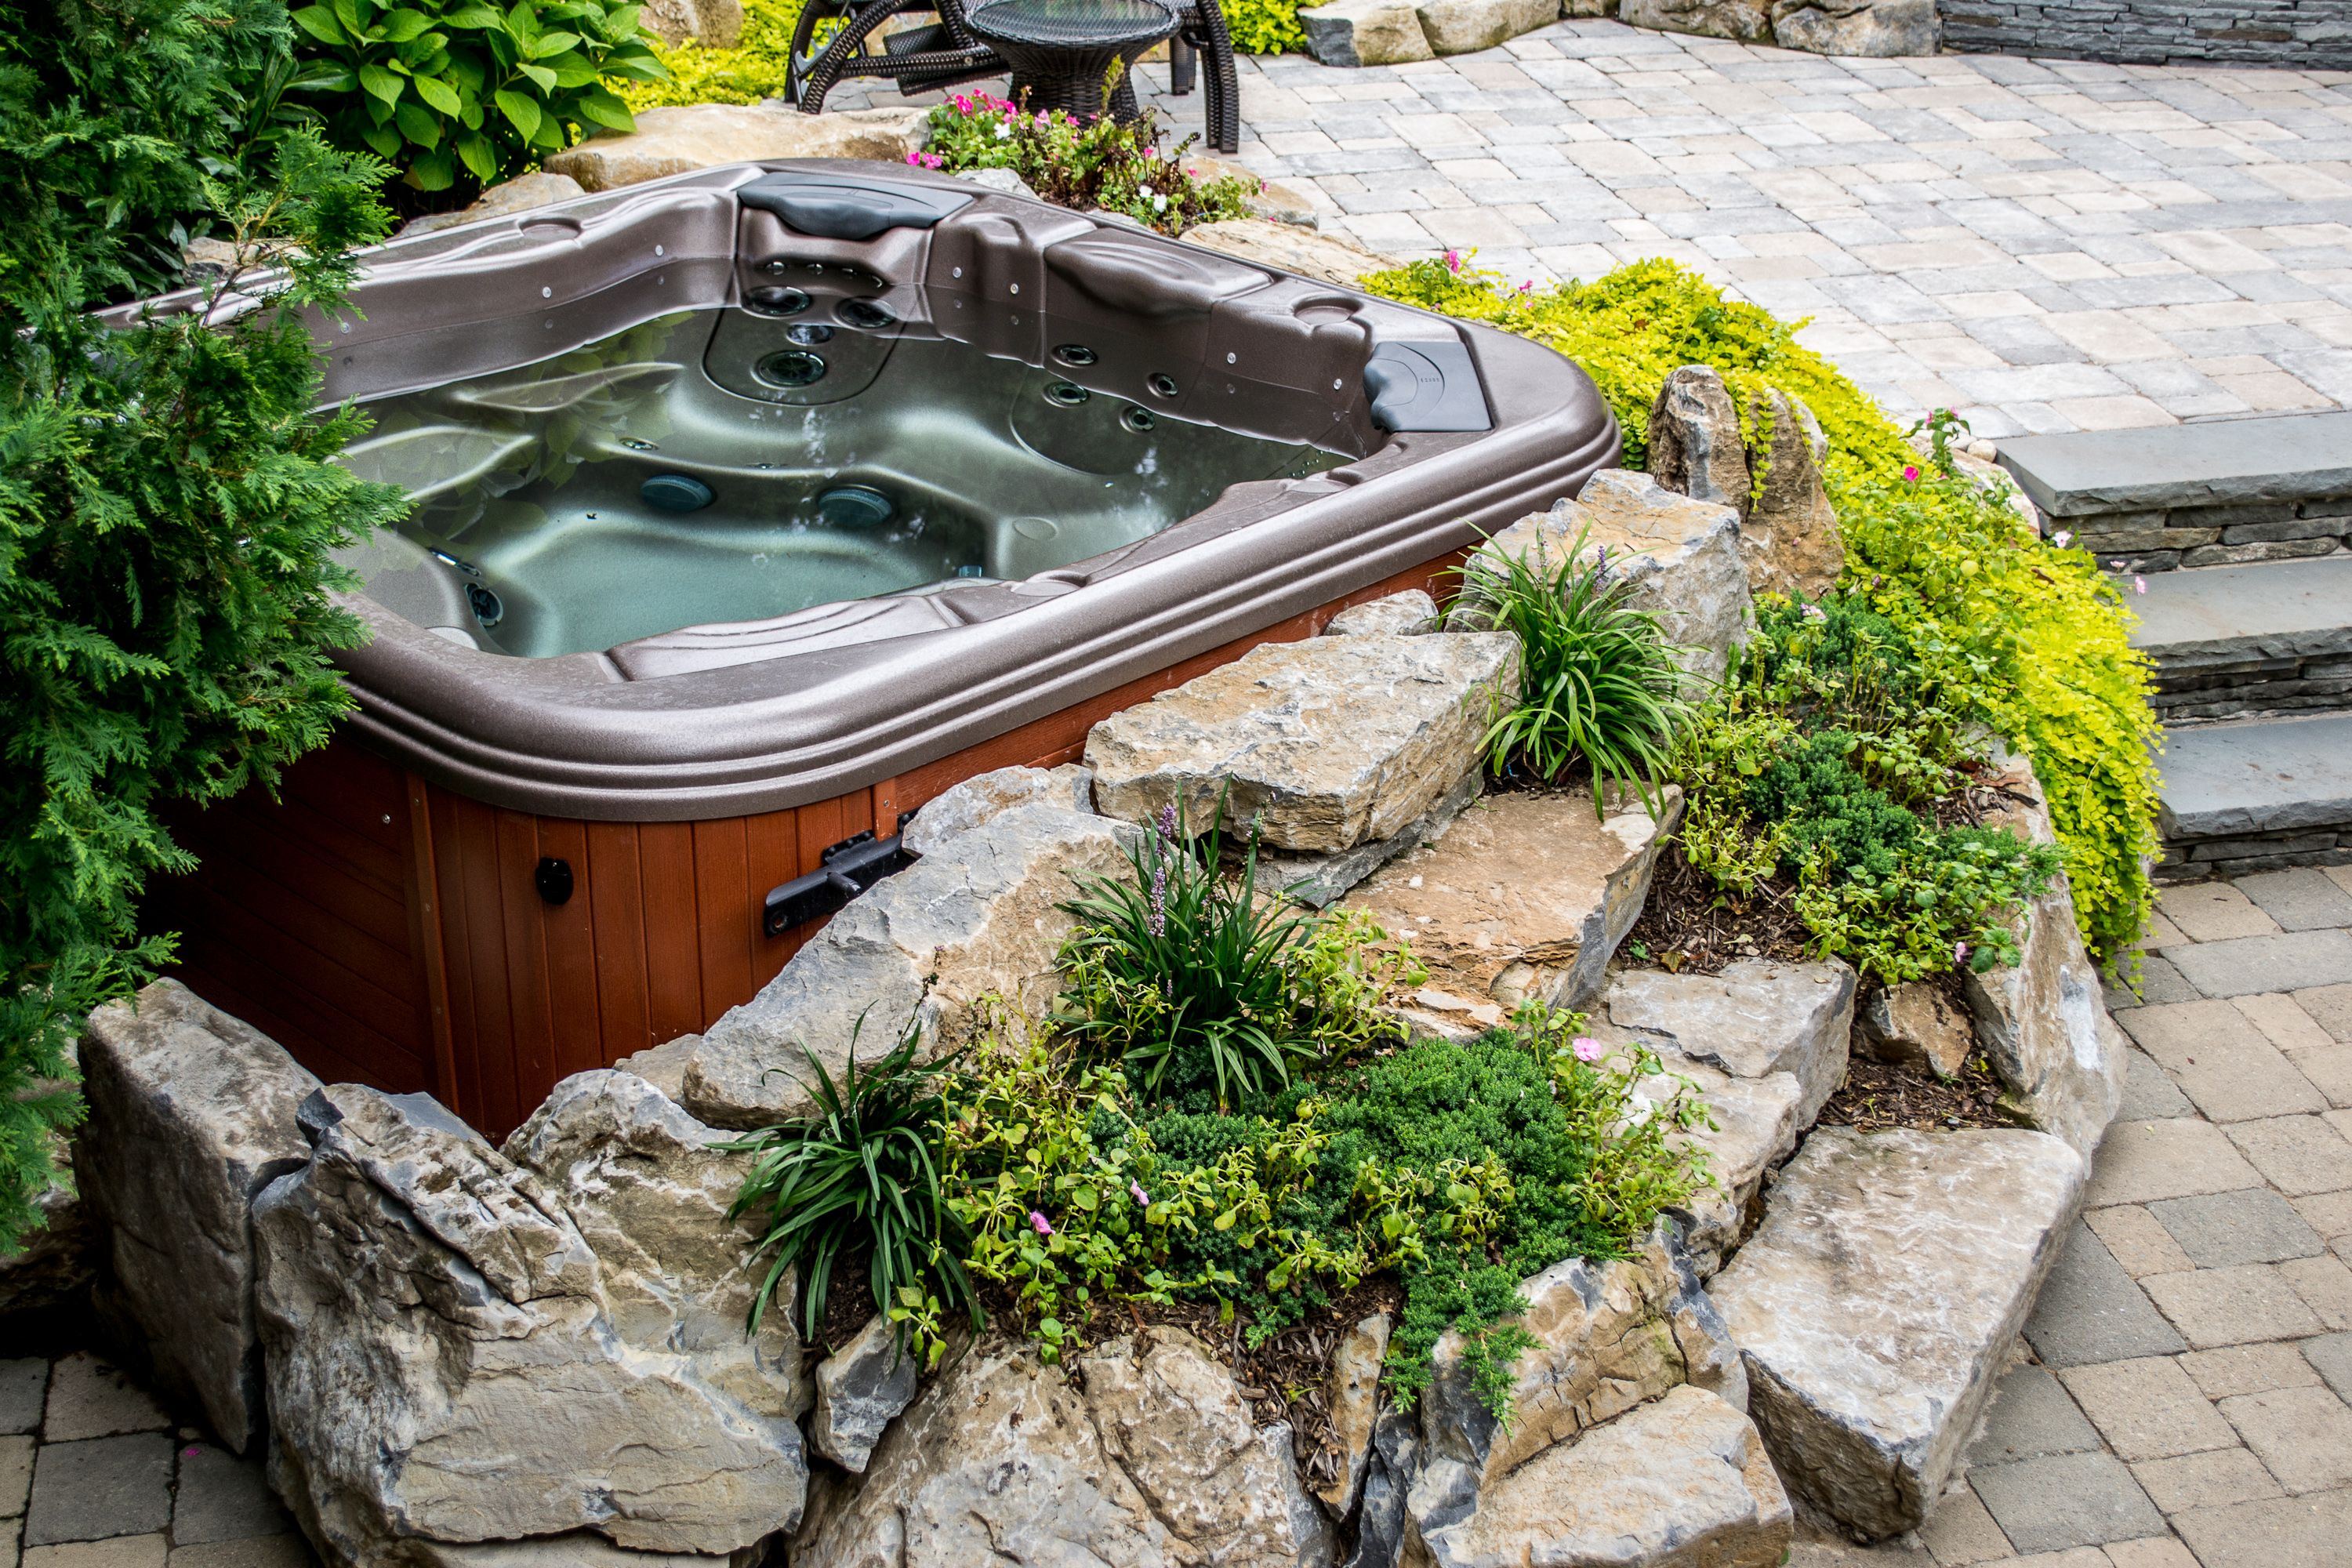 hot tub landscaping ideas bullfrog spas long island hot tub huntington built in spa 1. Black Bedroom Furniture Sets. Home Design Ideas